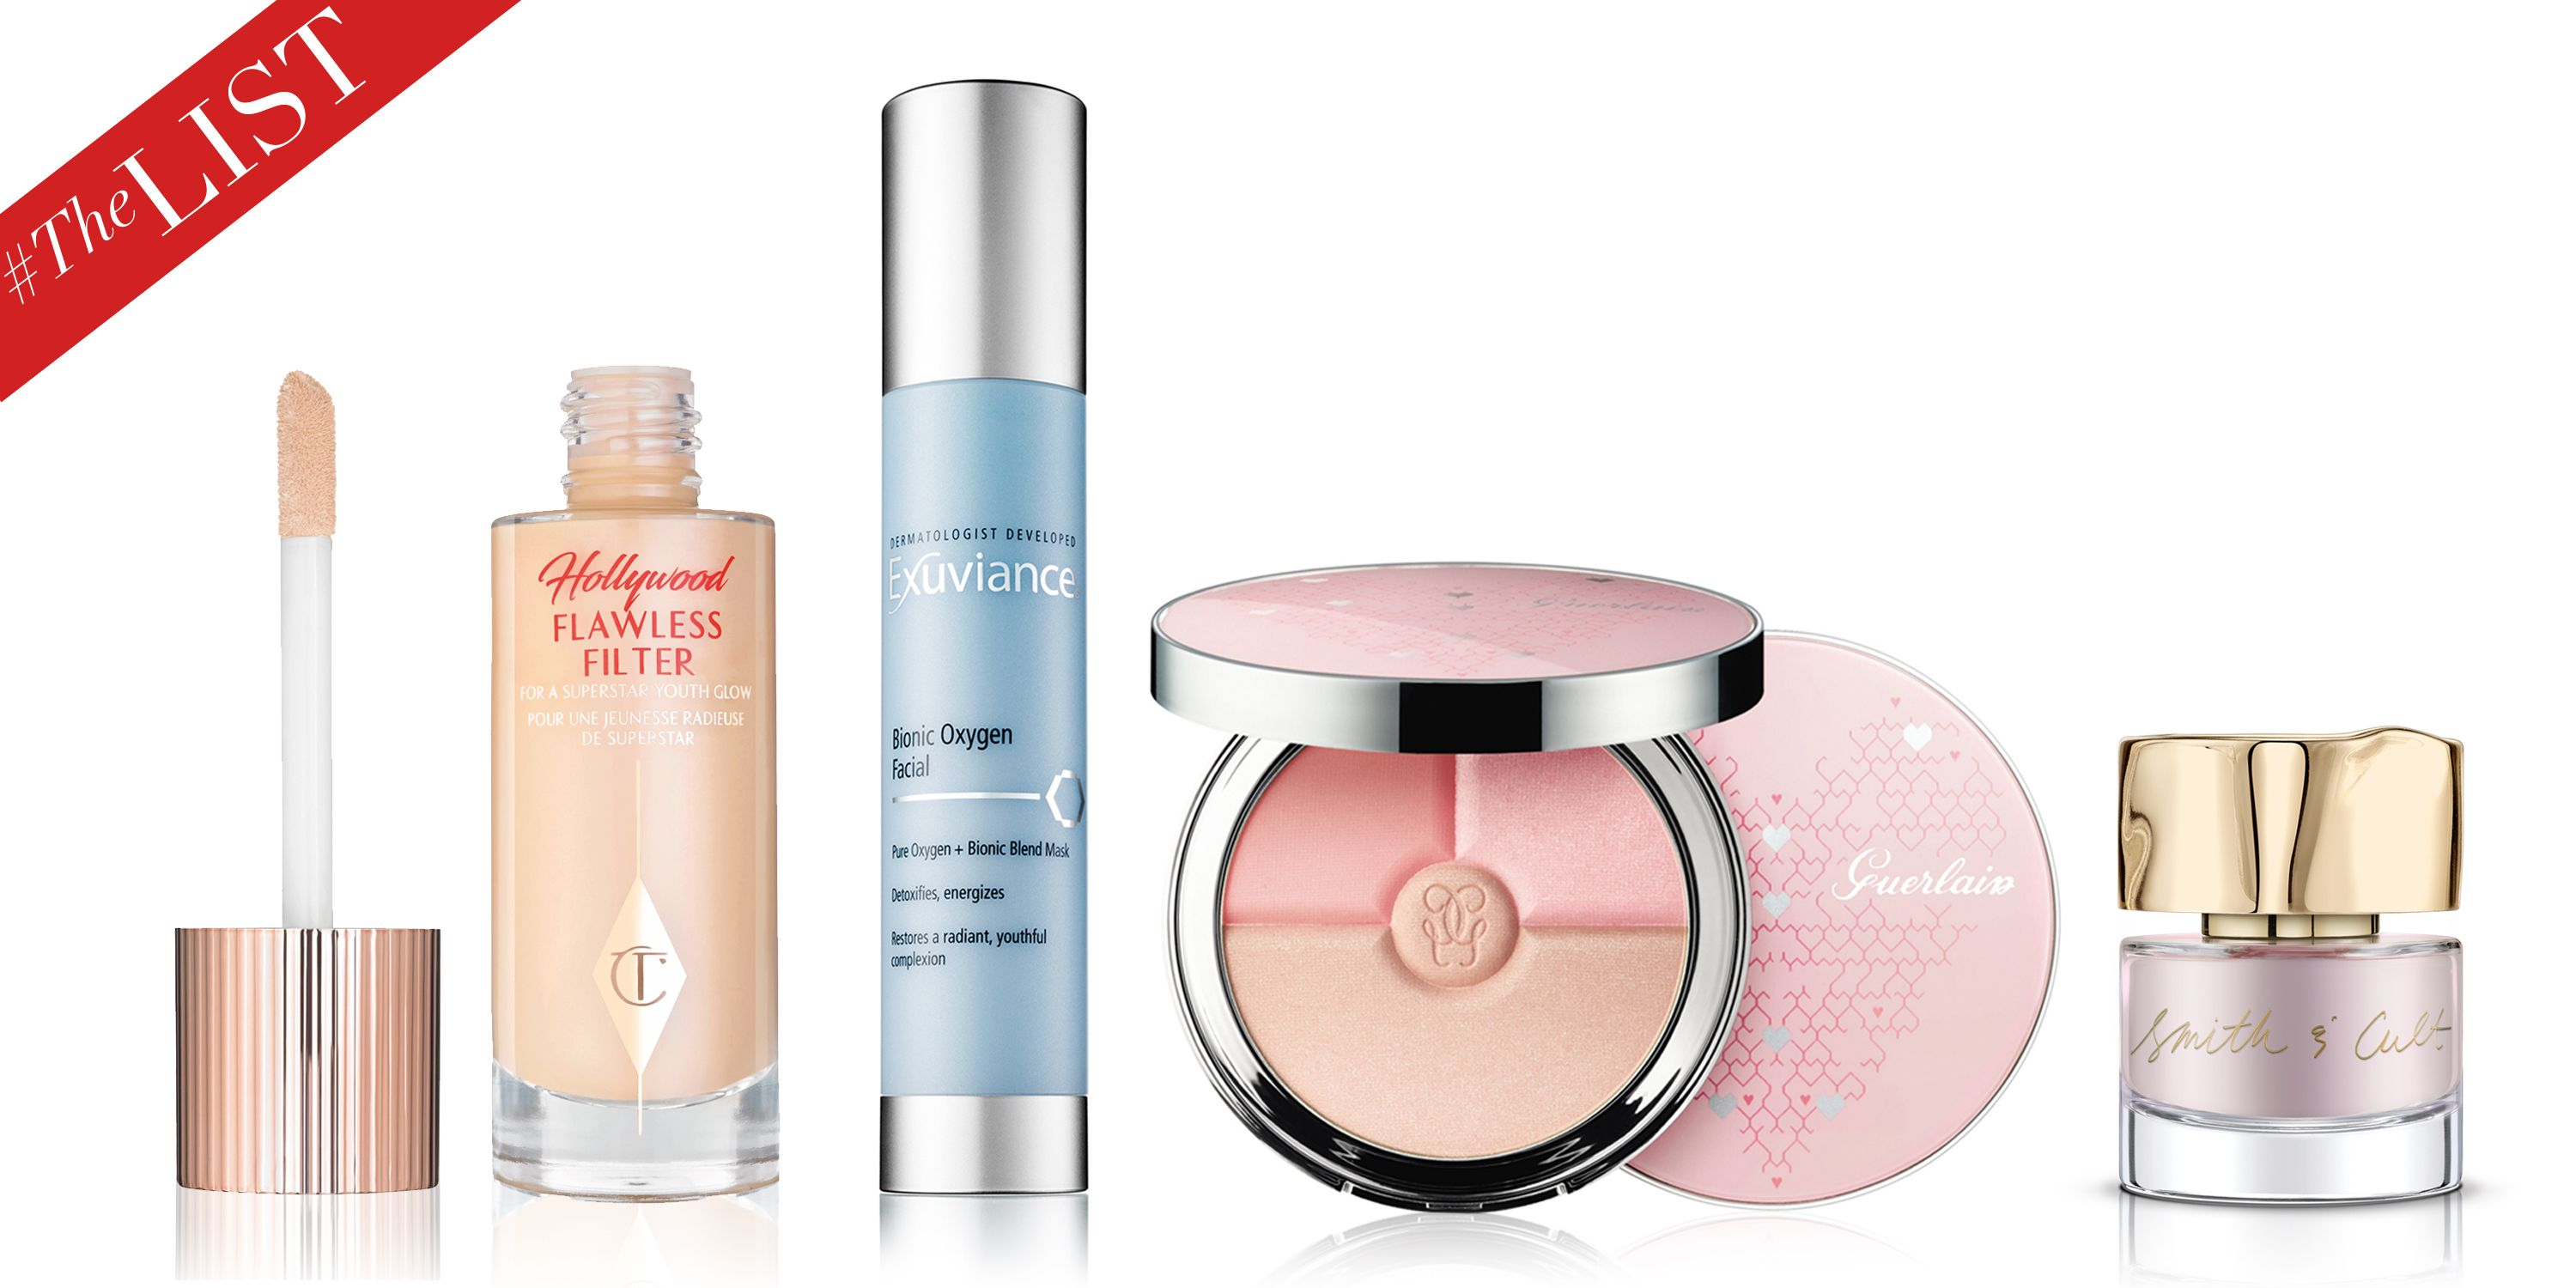 TheLIST: How to Get The Perfect Wedding-Day Glow